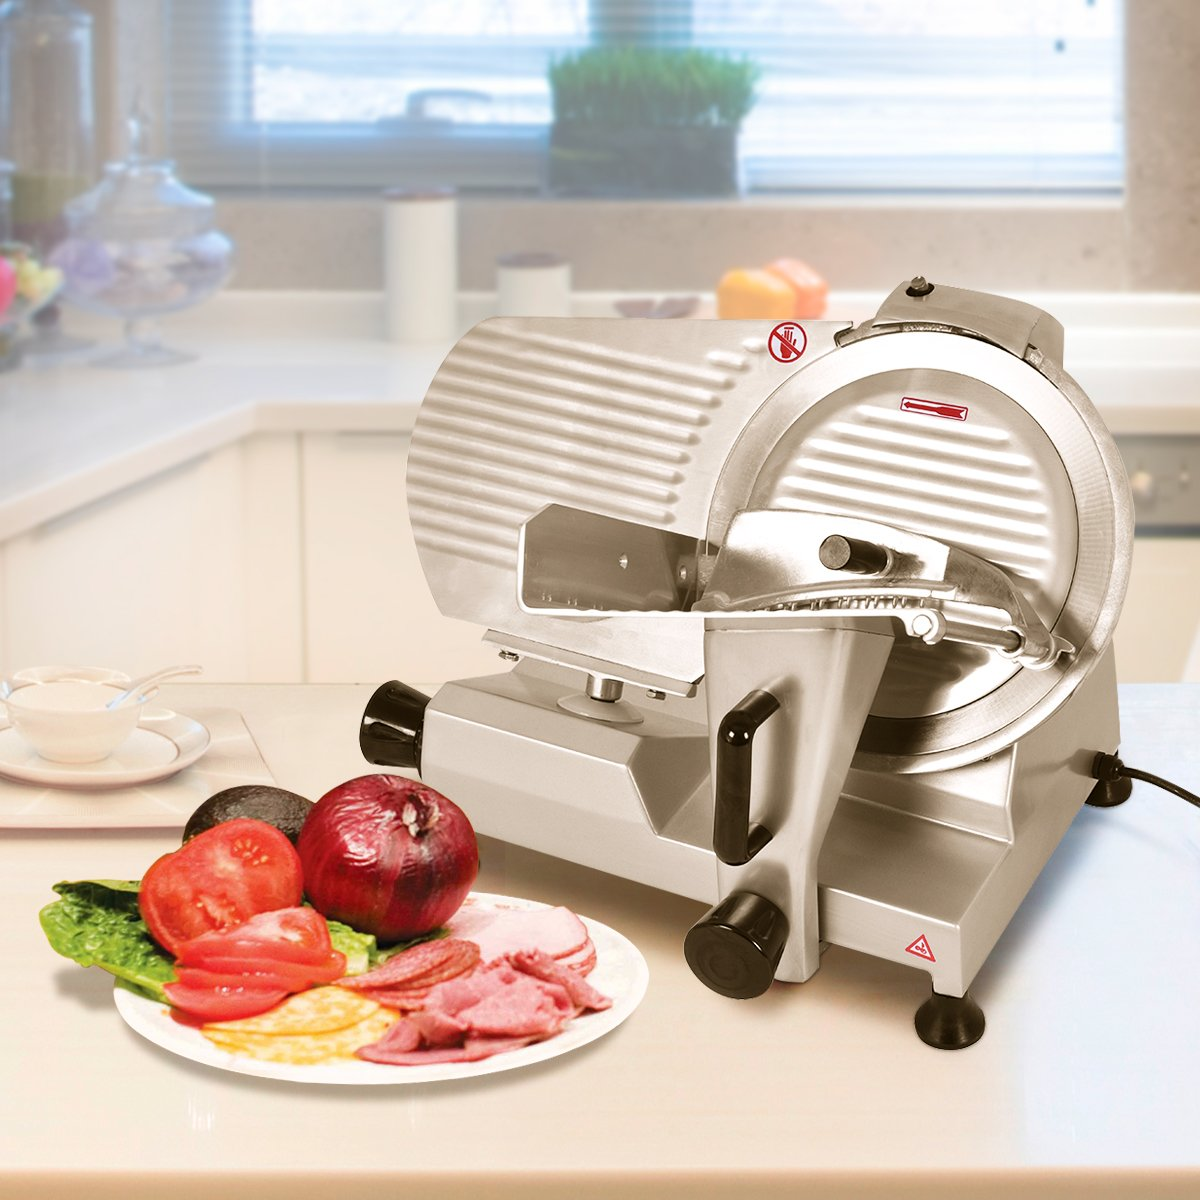 Tangkula 12'' Blade Commercial Meat Slicer Deli Meat Cheese Food Slicer Industrial